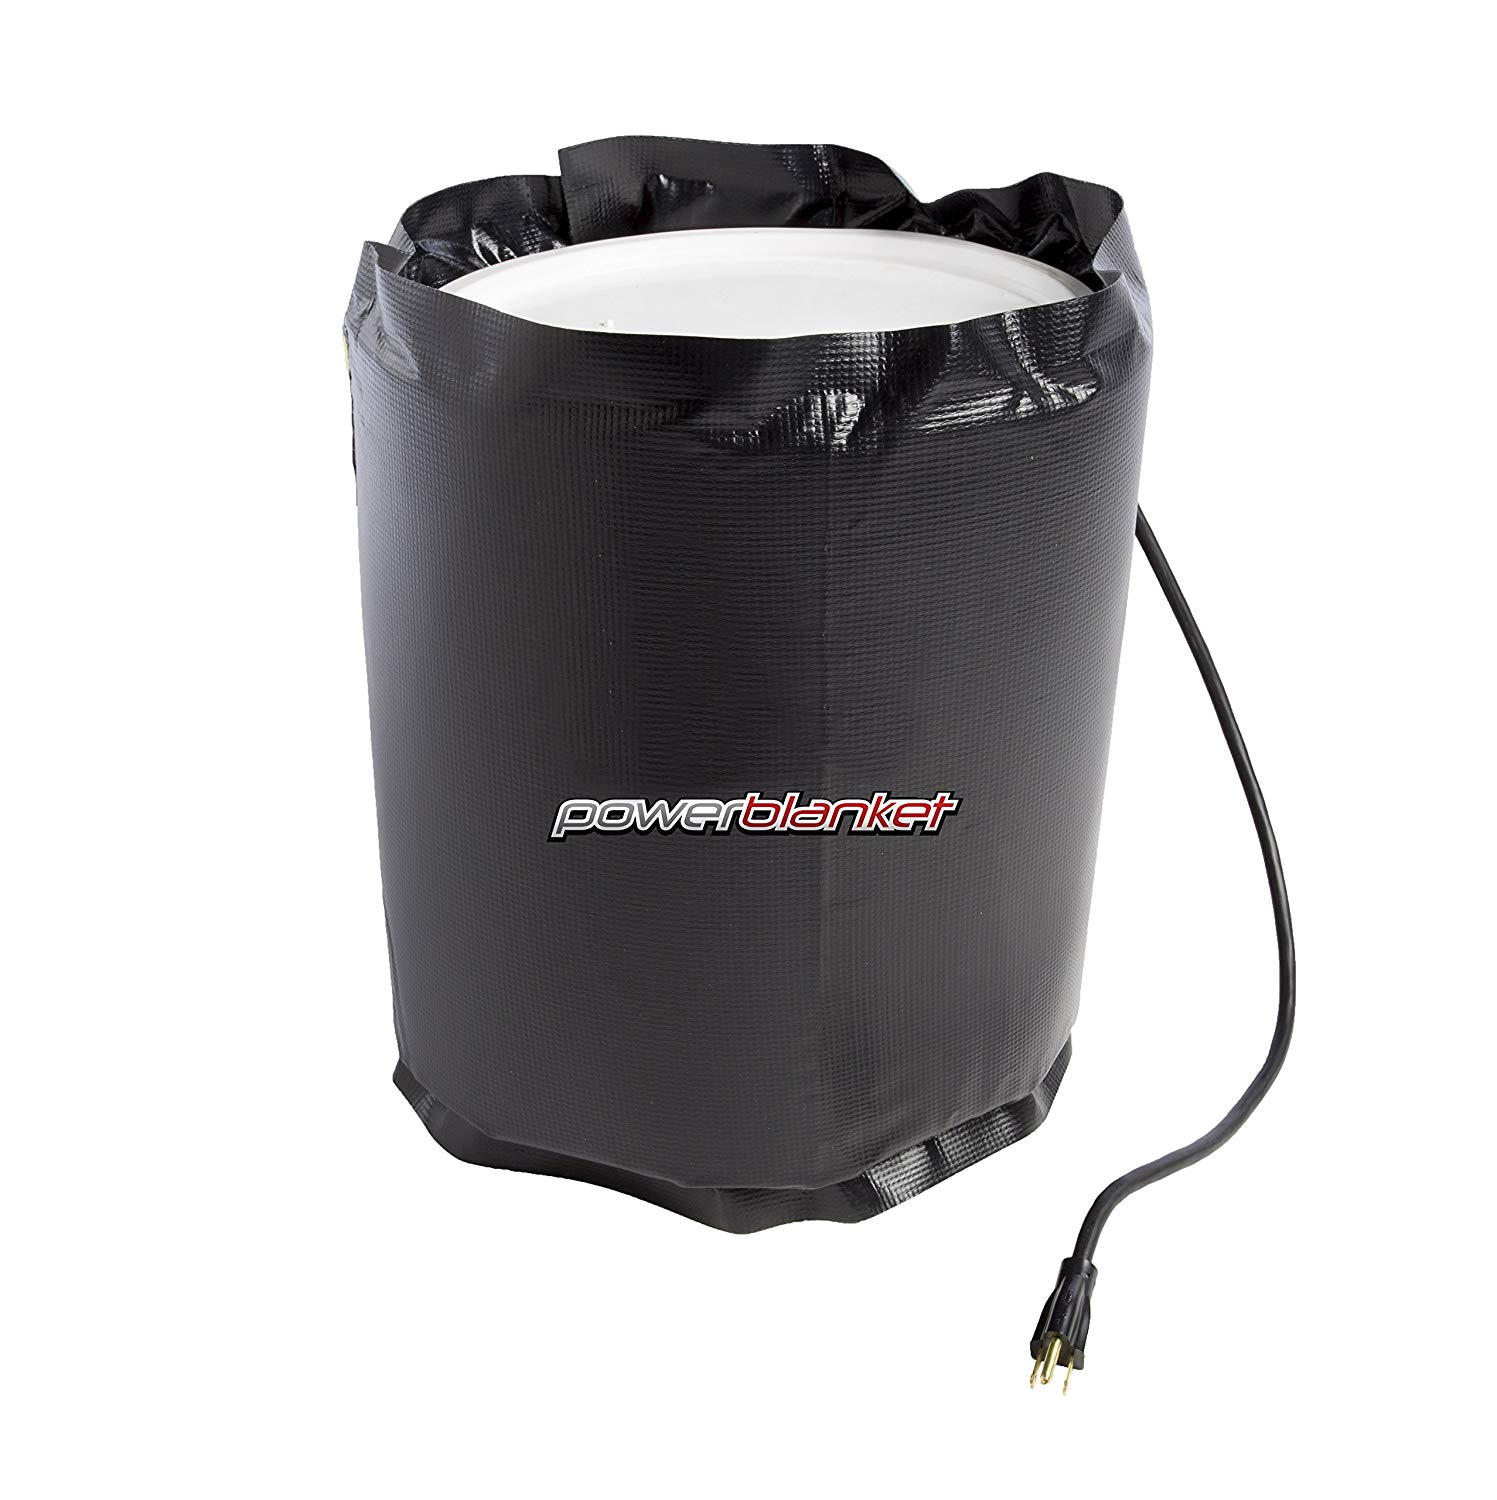 Bucket Heater 5 Gallon Insulated PRO Adjusts up to 160°F Temperature BH05-PRO